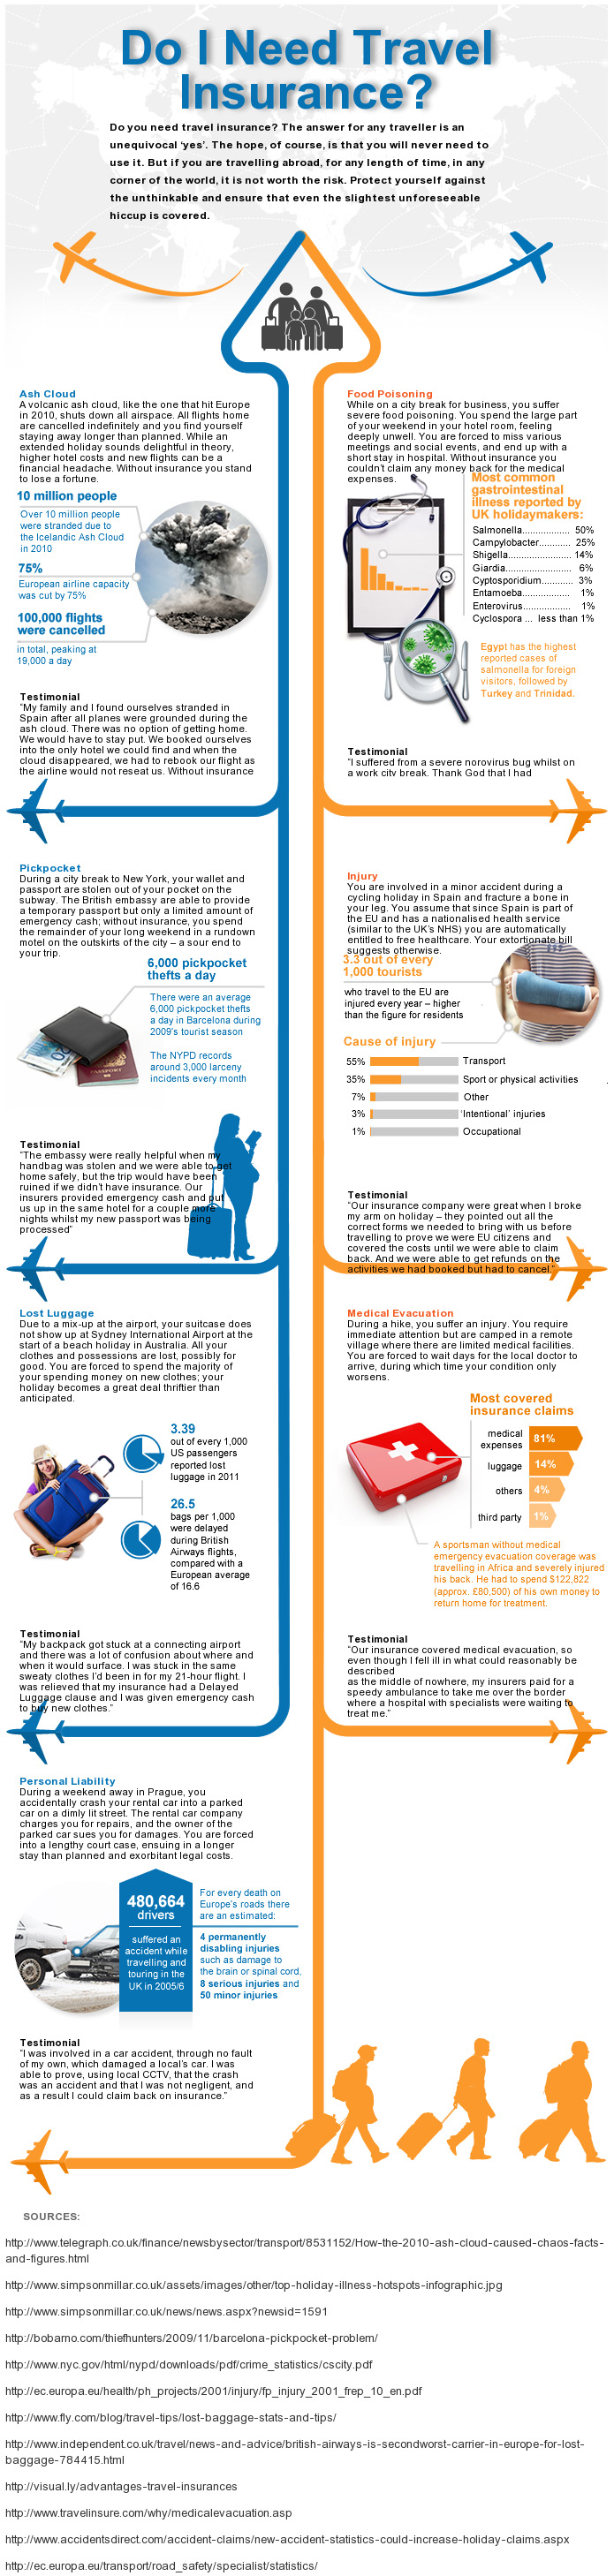 Why Get Travel Insurance-Infographic